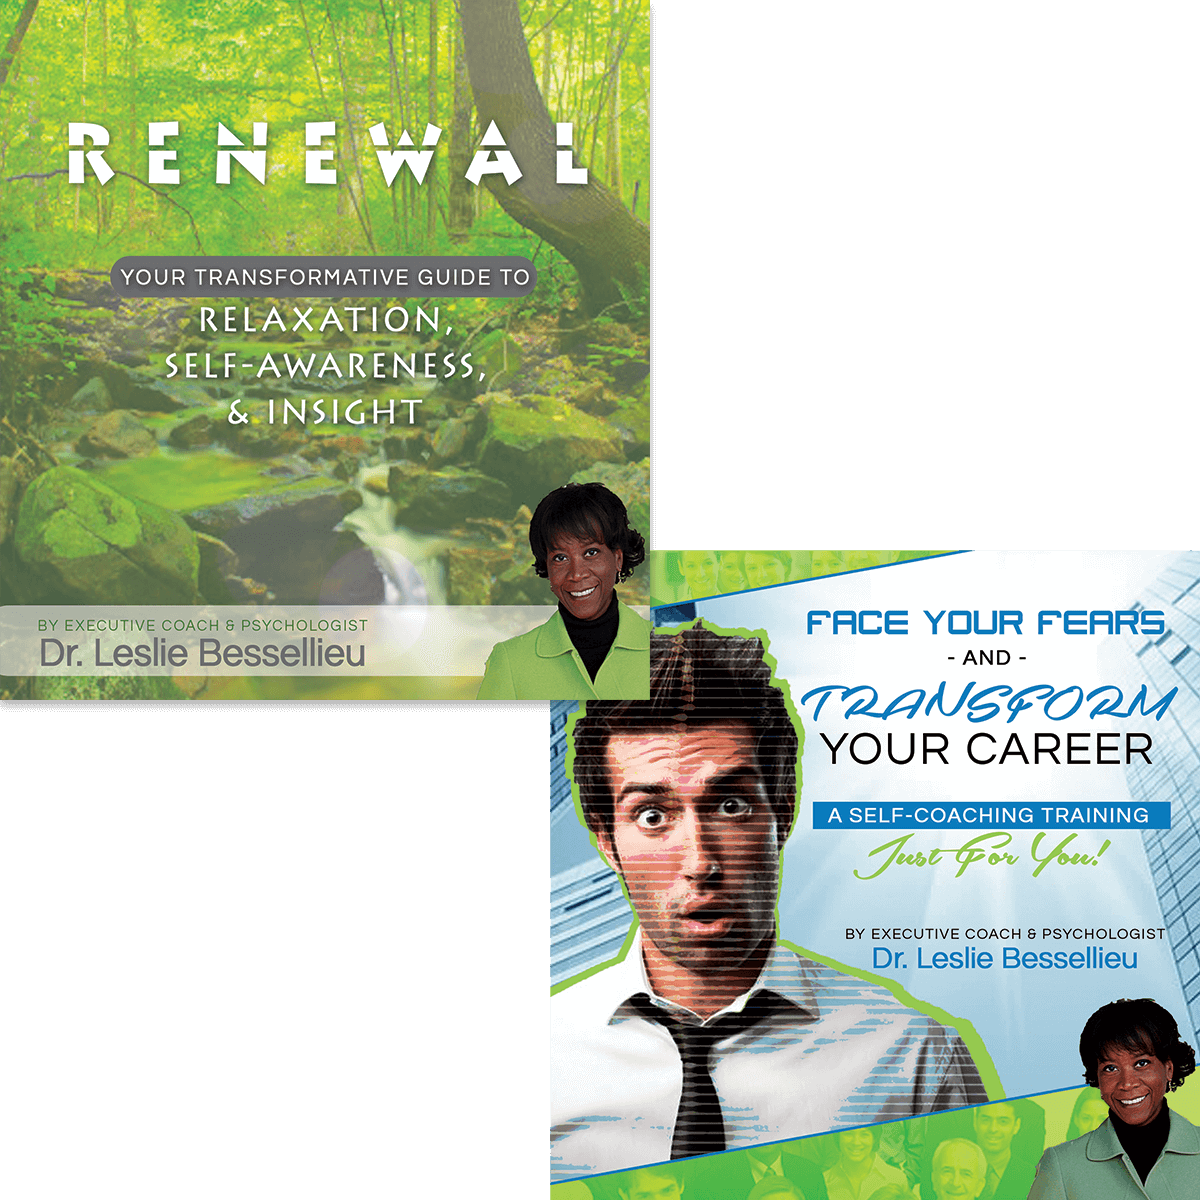 Face Your Fears and Transform Your Career & RENEWAL Group Package